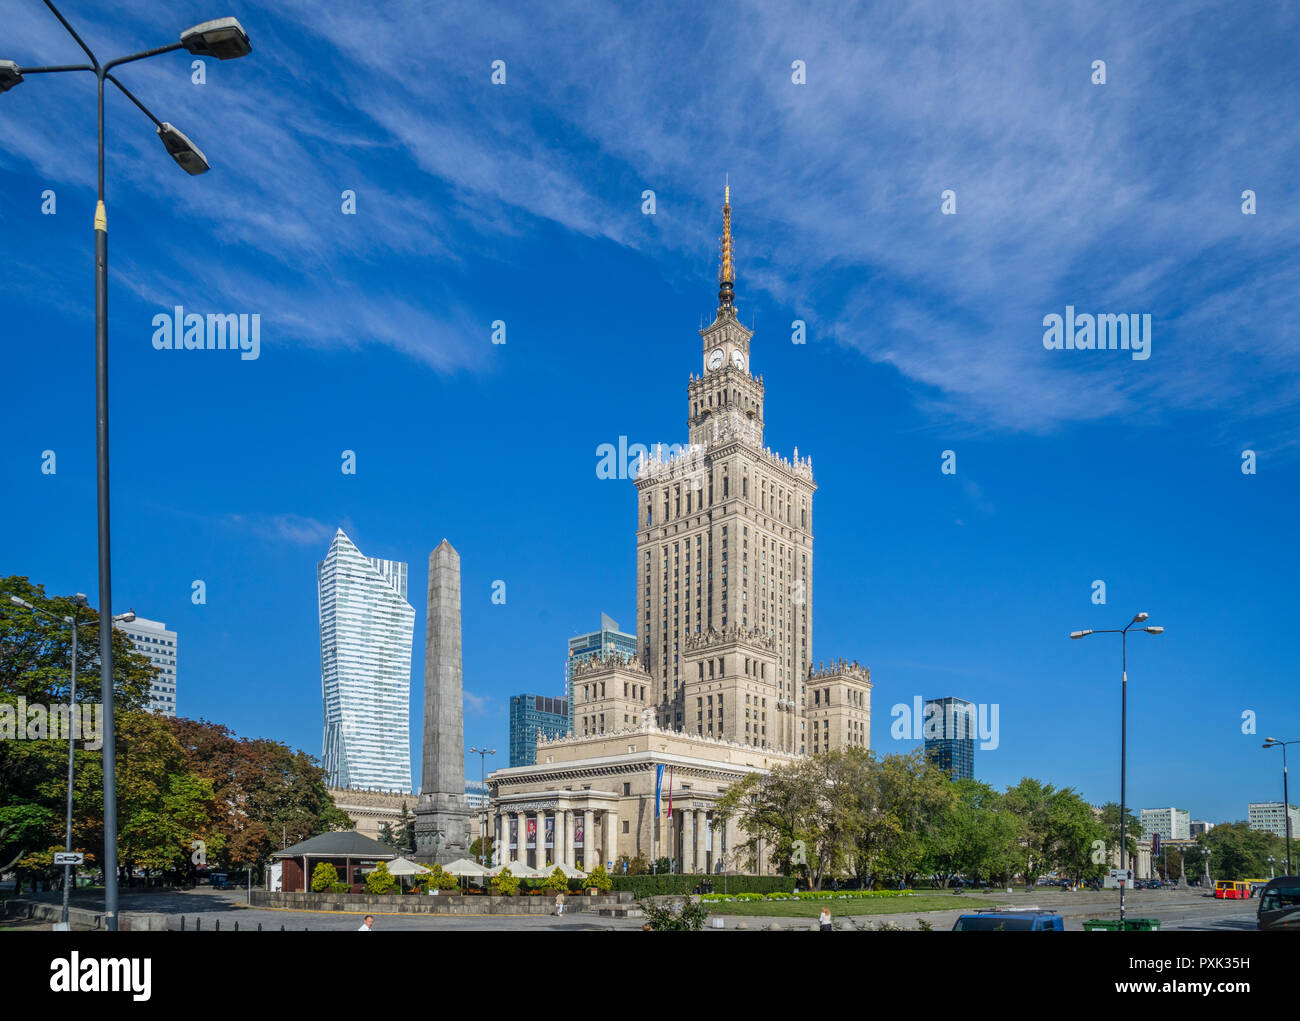 the soc-realist Russian Wedding Cake style Palace of Culture and Science with theZłota 44 skyscraper looming in the background, Warsaw, Poland Stock Photo